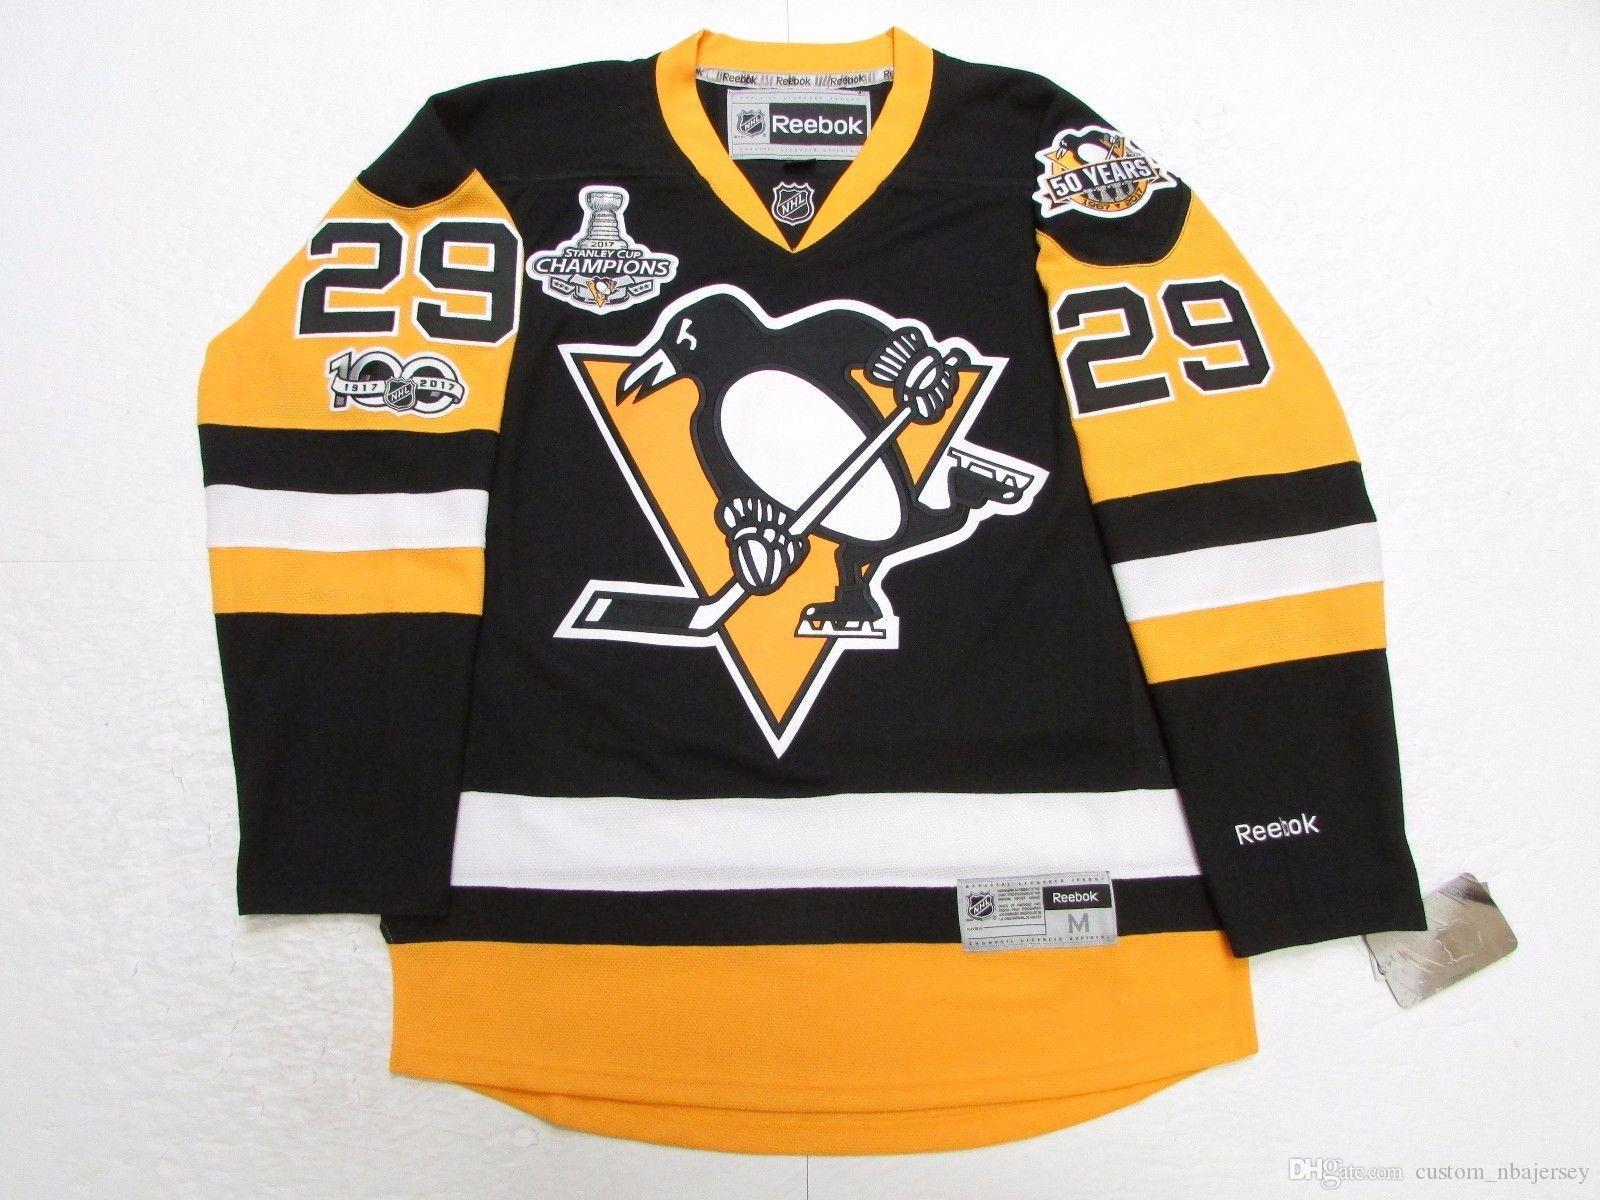 super popular b9b7b 5a10a Cheap custom MARC-ANDRE FLEURY PITTSBURGH PENGUINS 2017 STANLEY CUP  CHAMPIONS JERSEY stitch add any number any name Hockey Jersey XS-5XL